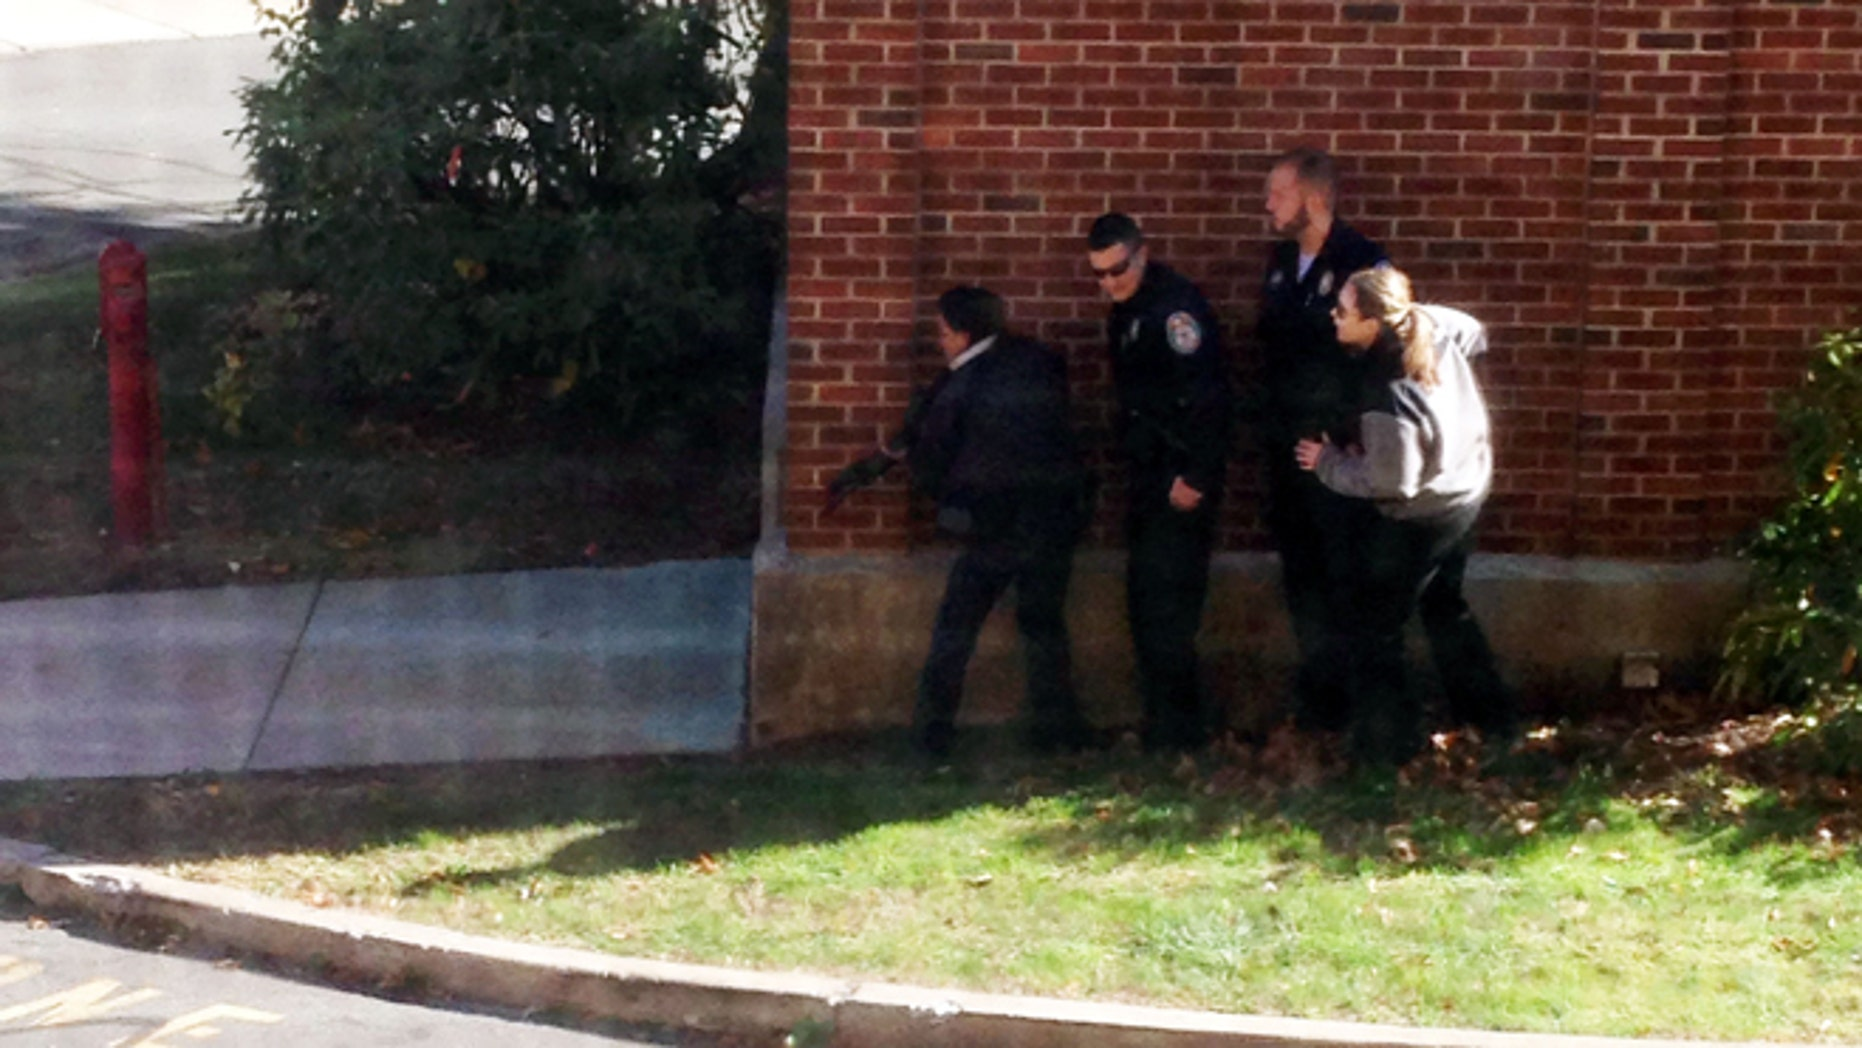 Nov. 4, 2013: In this photo taken through a window and provided to the AP, which has been authenticated based on its contents and other AP reporting, police officers respond  to a report of a suspicious person at Central Connecticut State University in  New Britain, Conn.